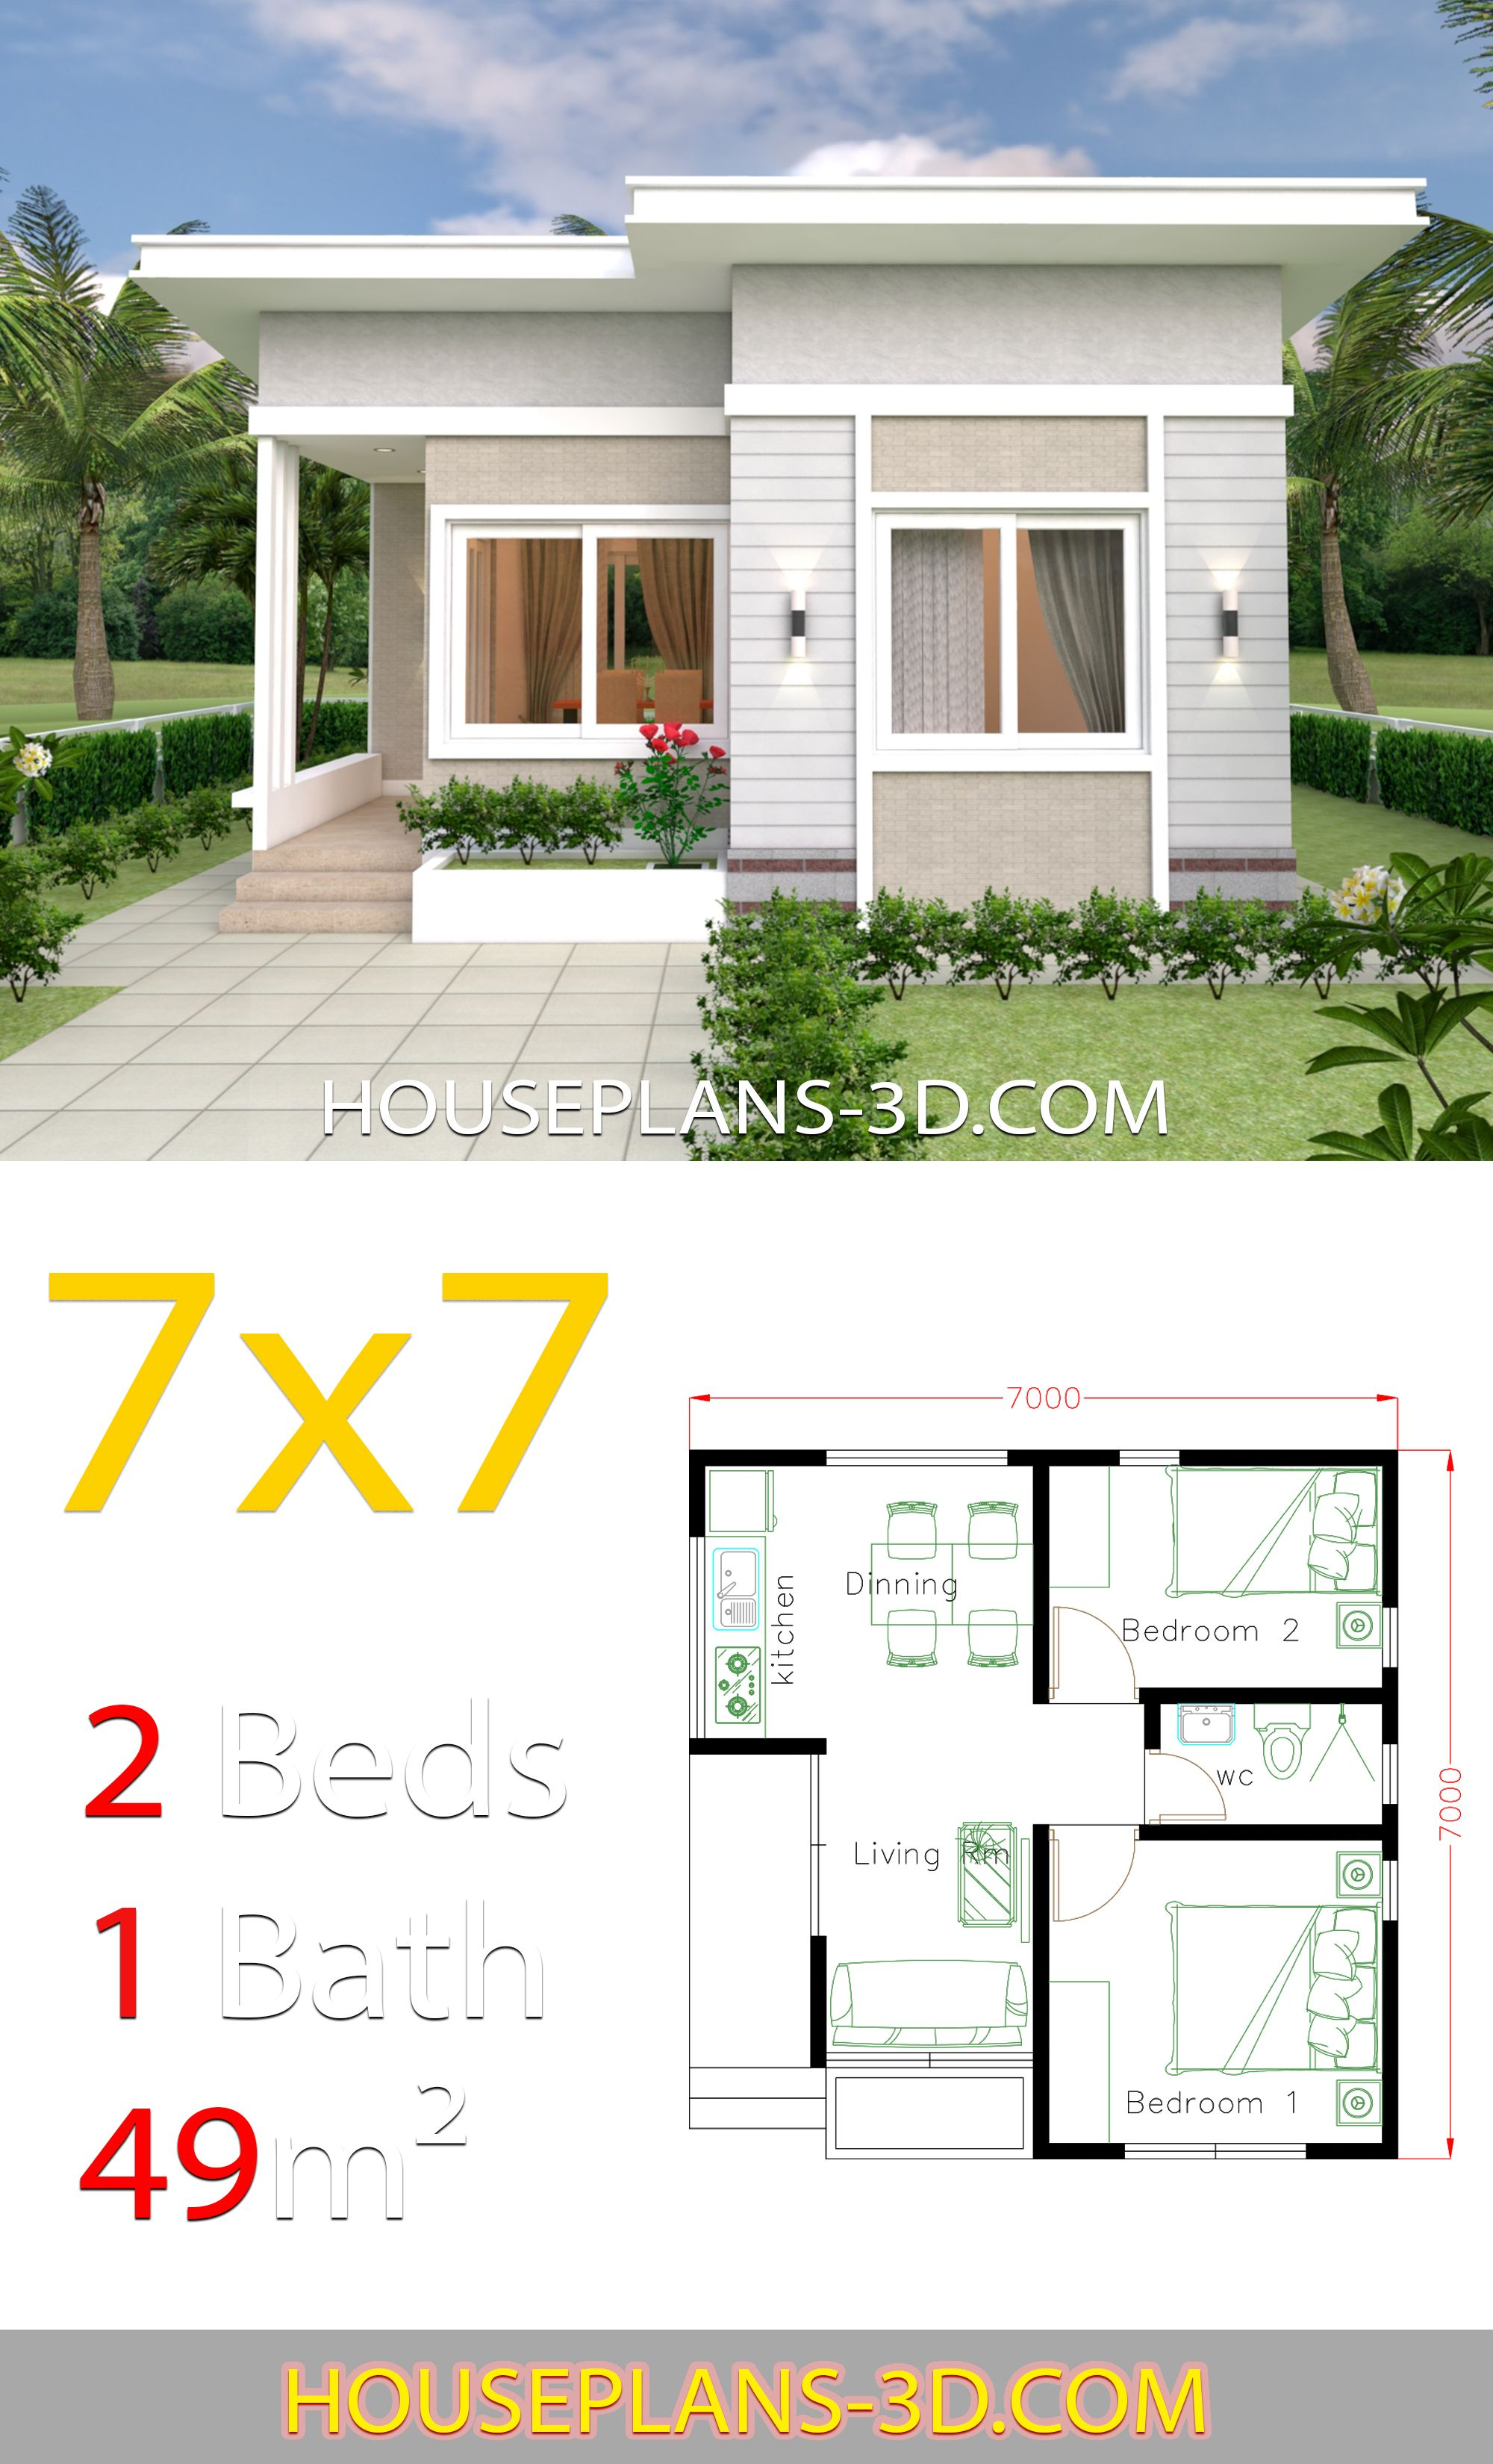 Small House Design Plans 7x7 With 2 Bedrooms House Plans 3d In 2020 Small House Design Plans 2 Bedroom House Design Simple House Design